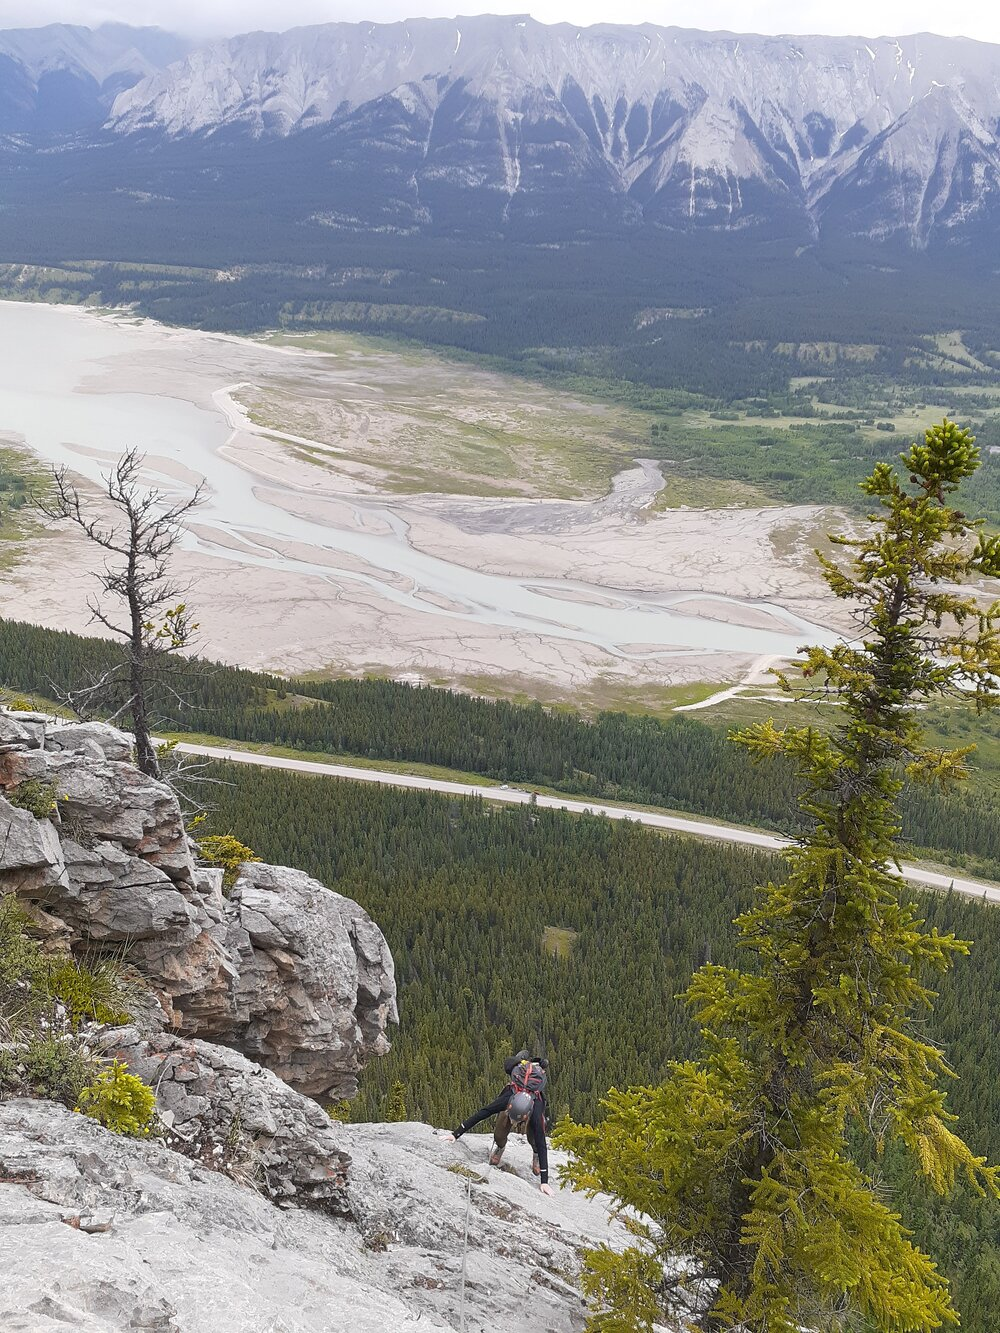 Looking down on Pitch 8